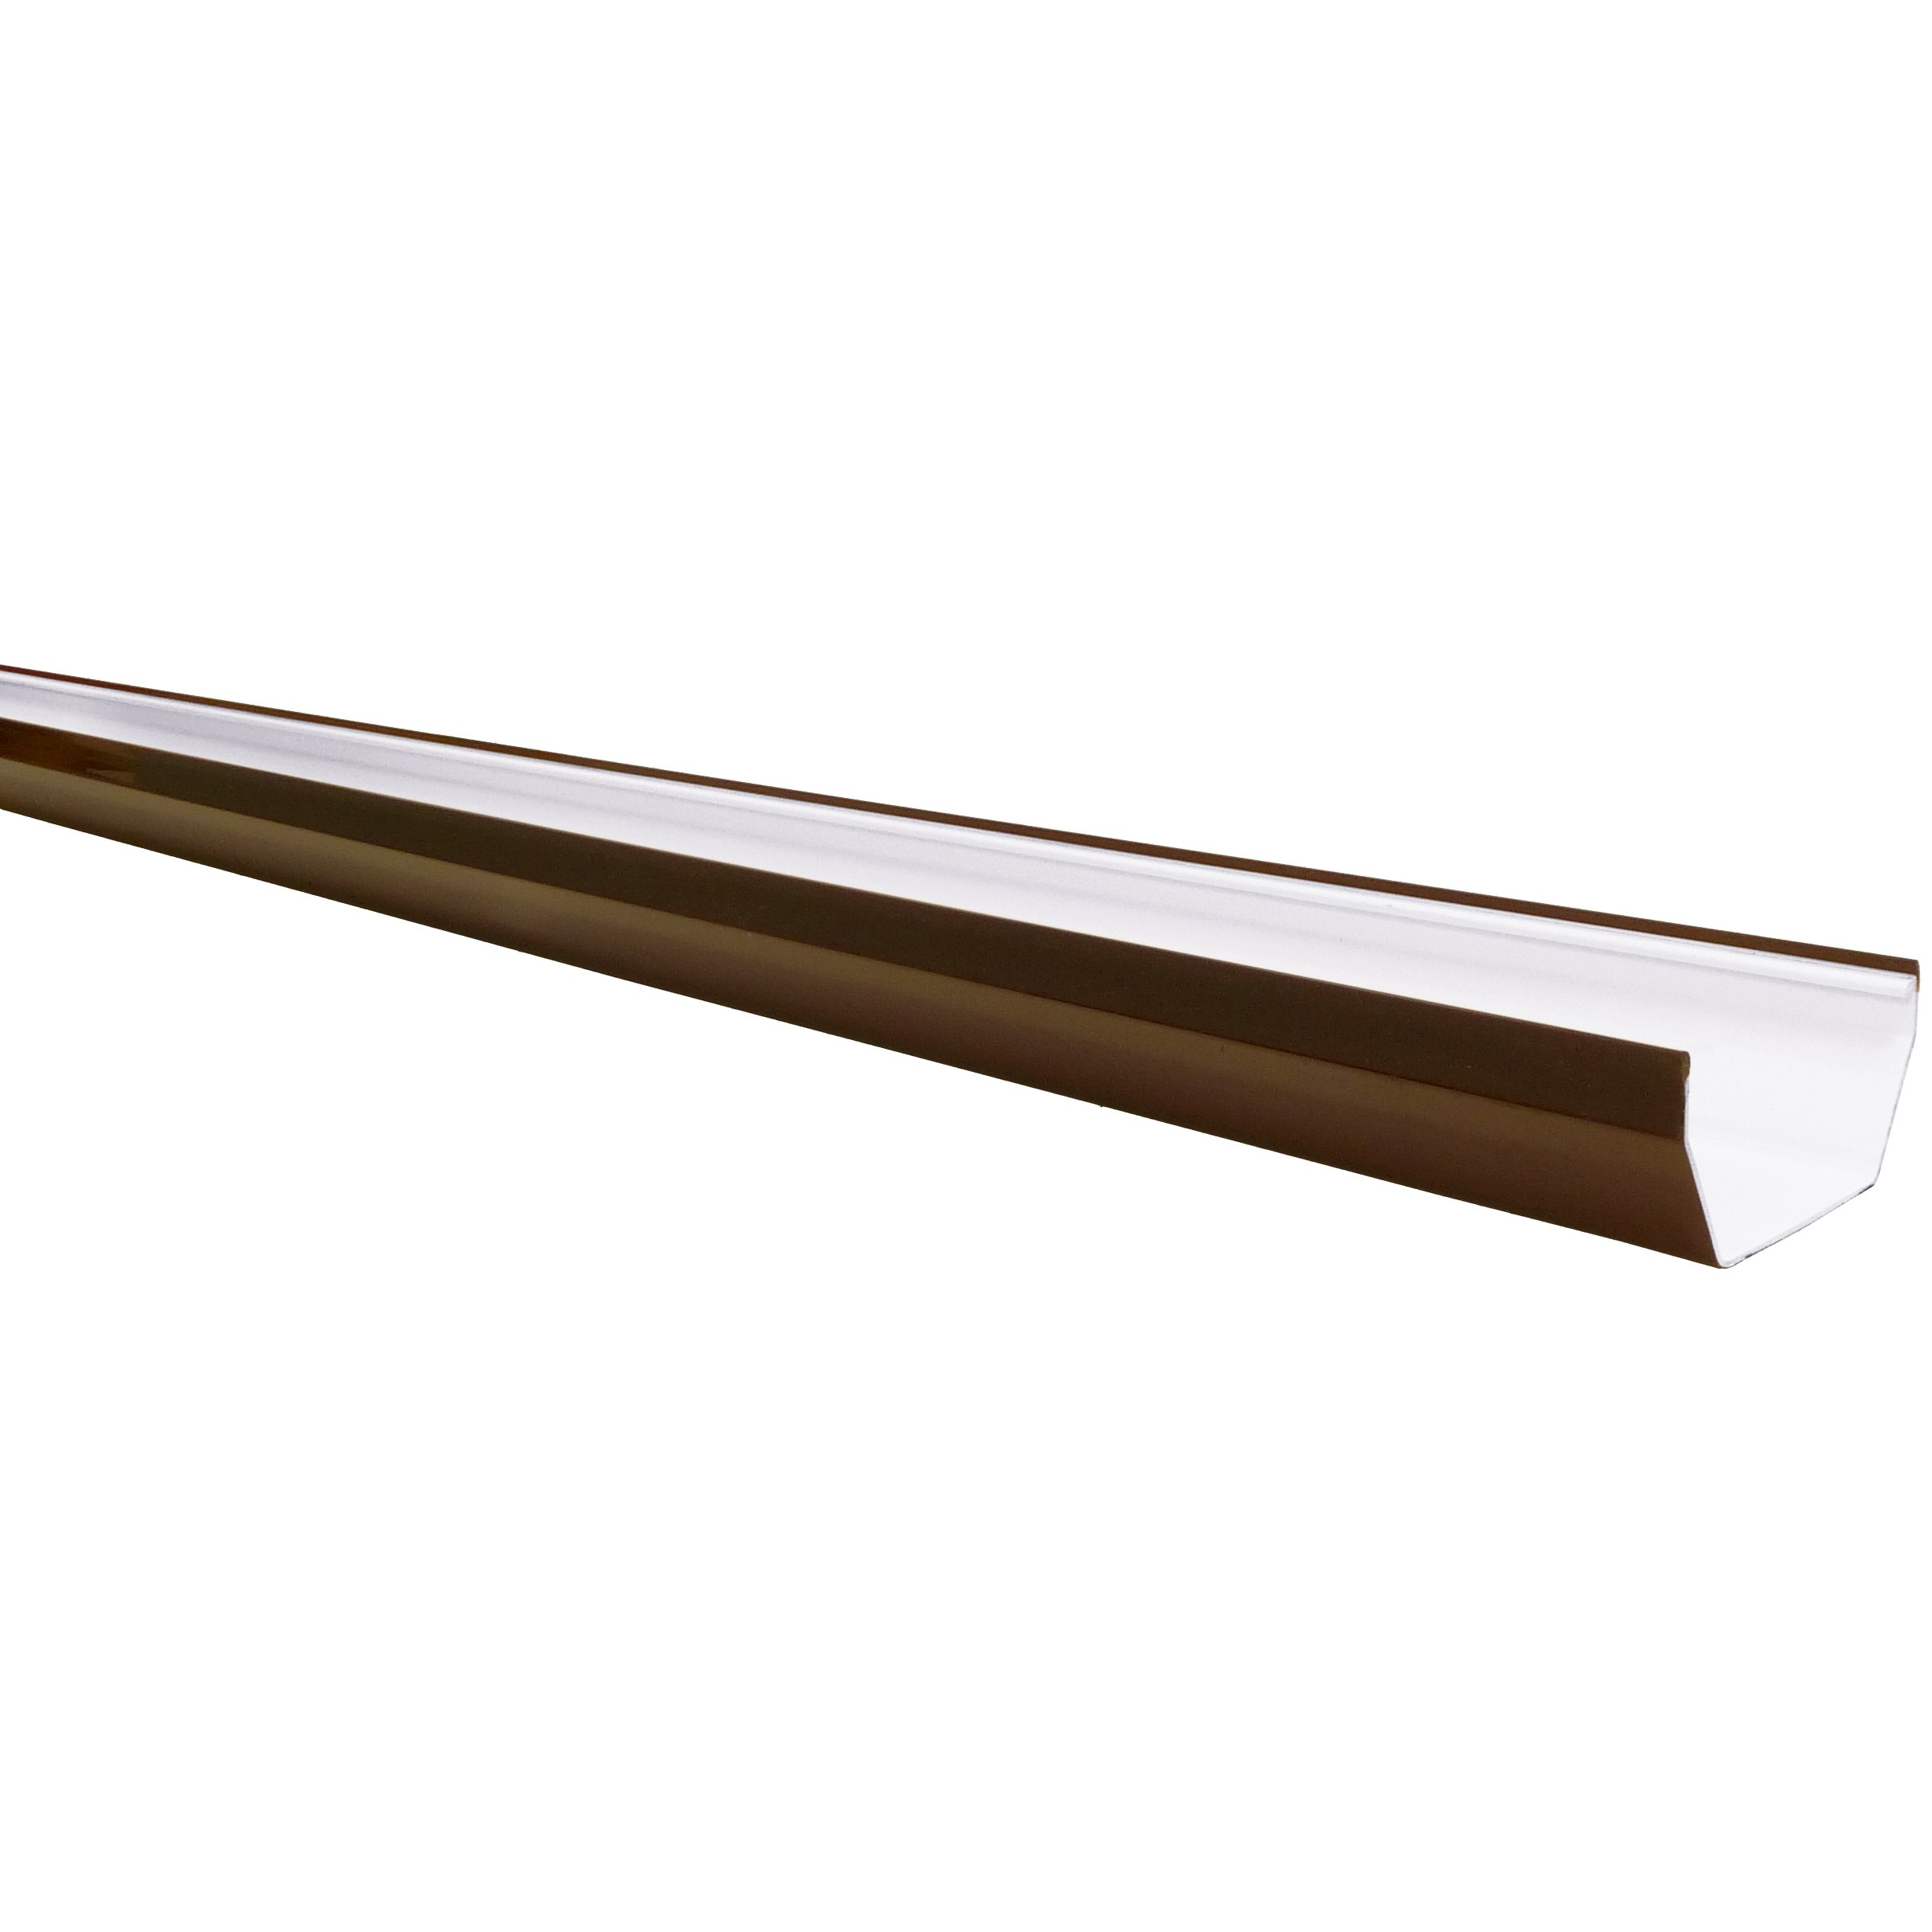 Freeflow 114mm Square Gutter - Brown, 4 metre